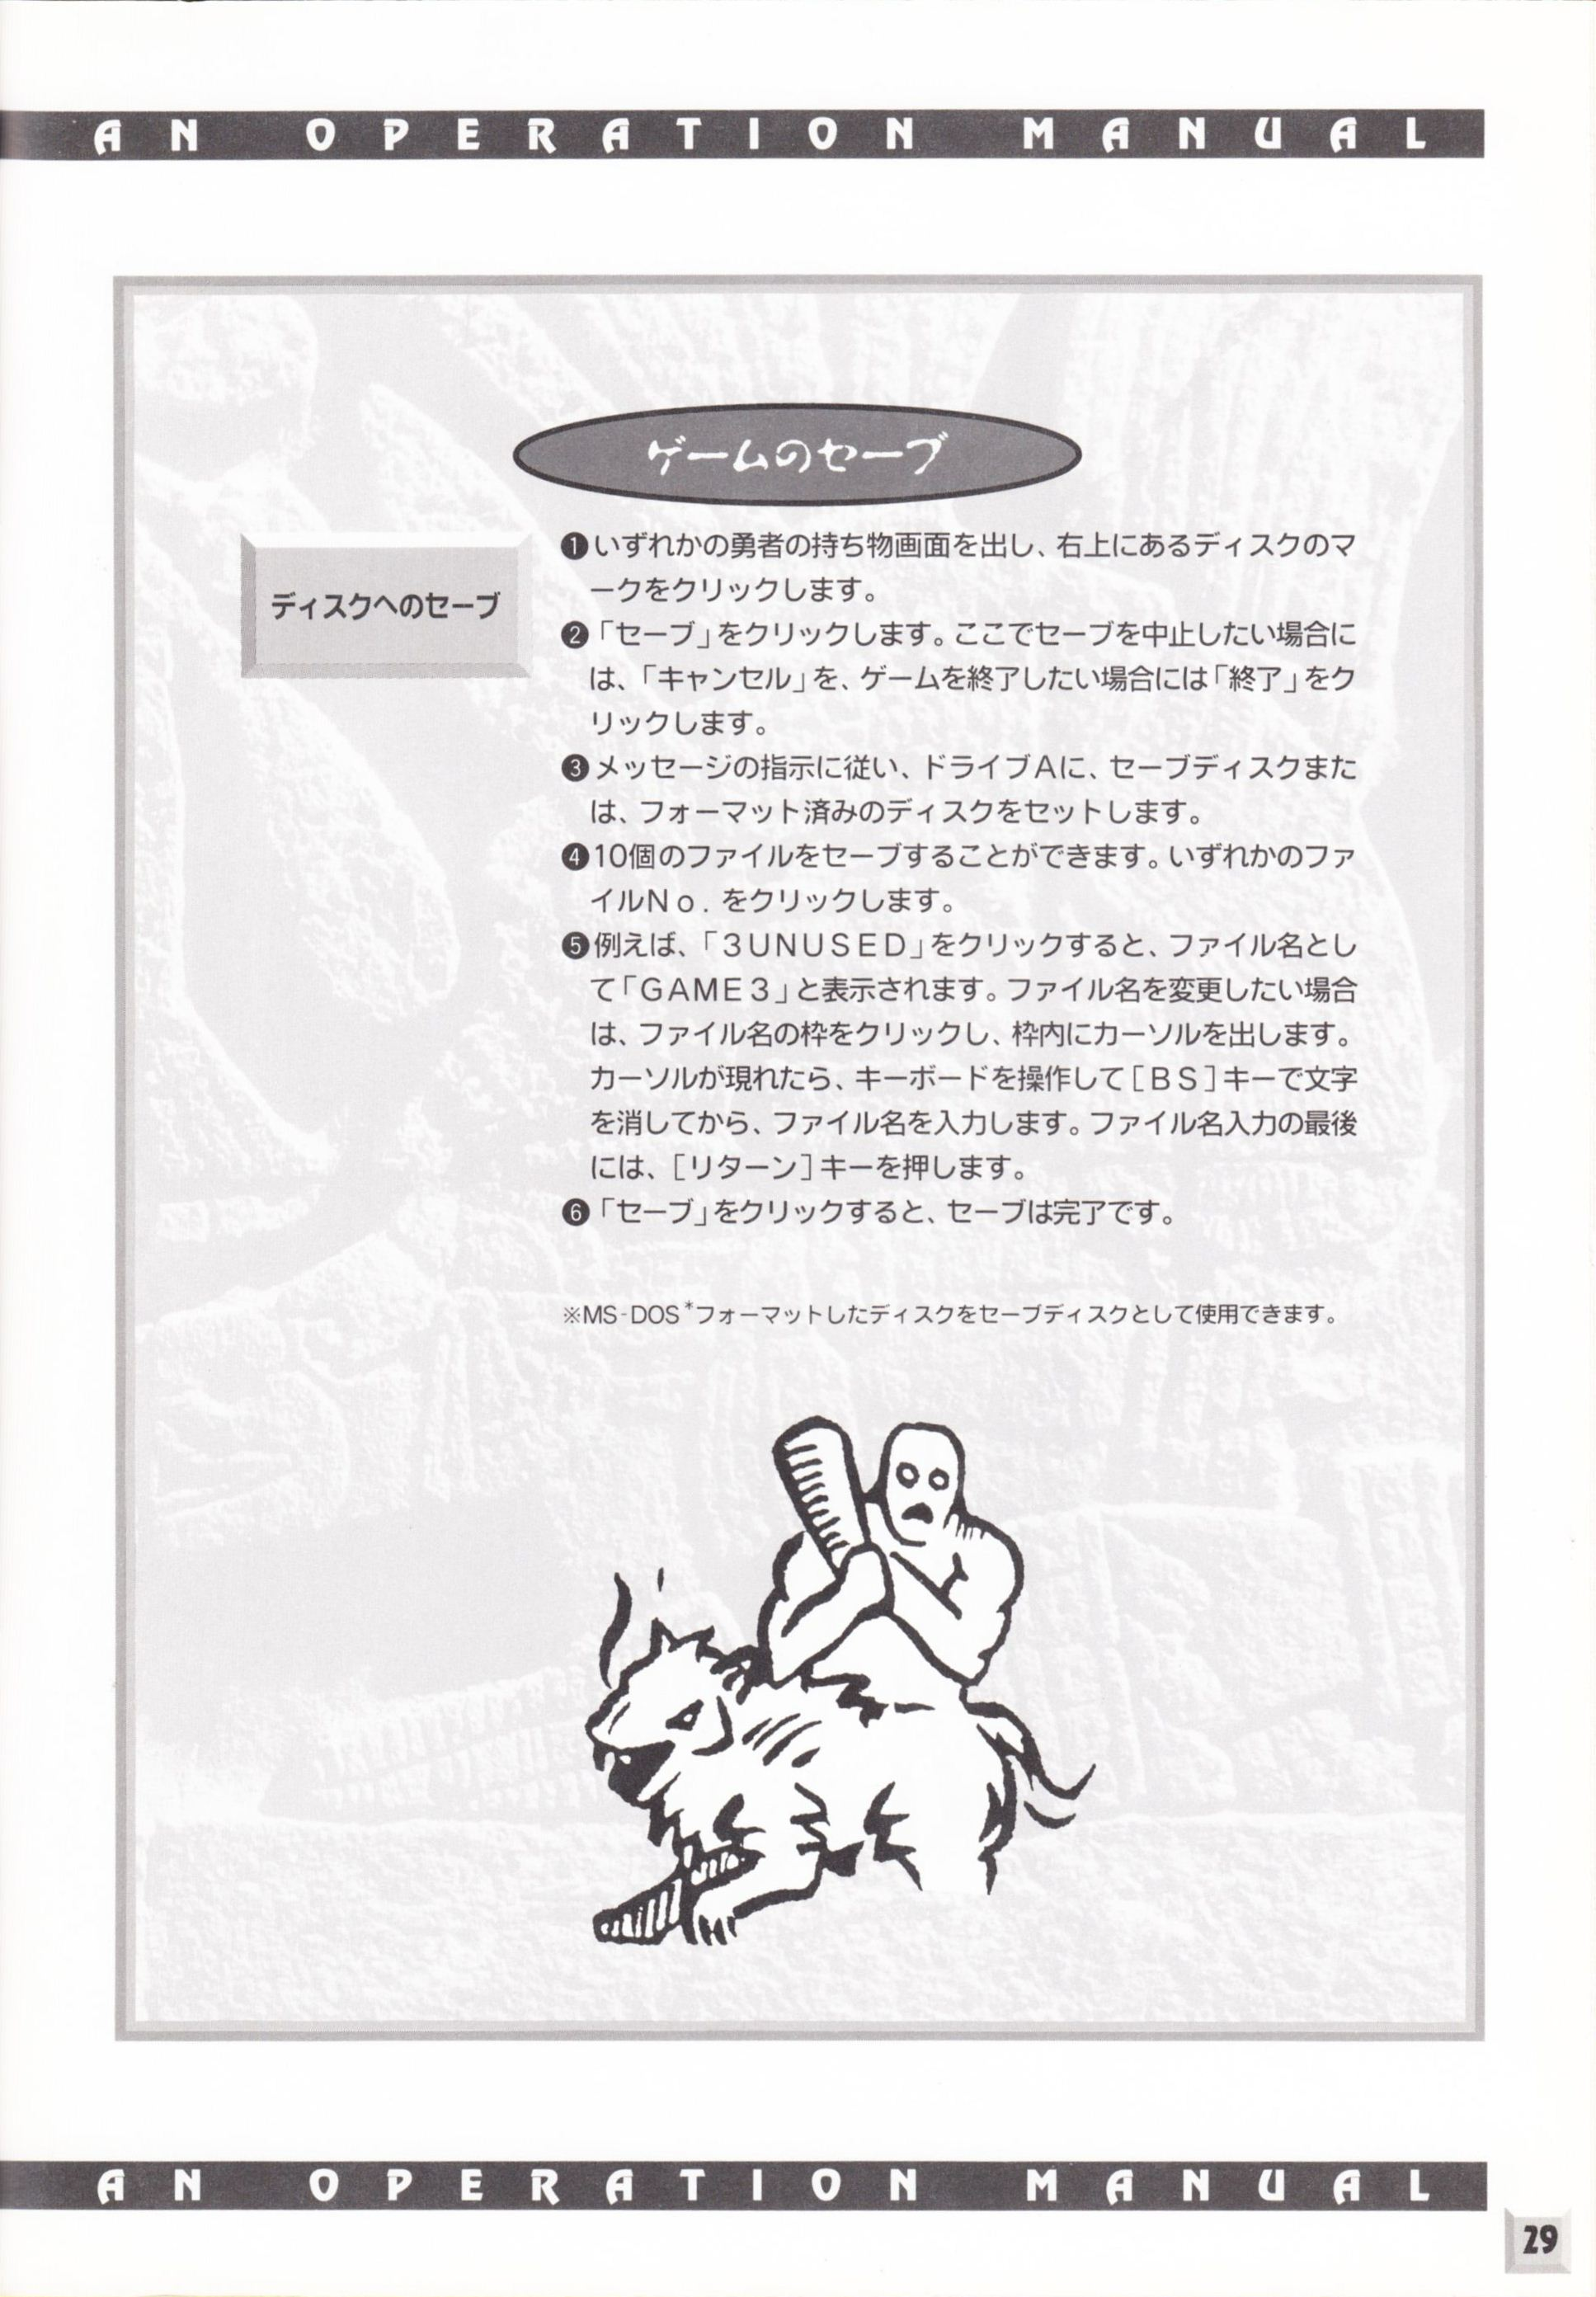 Game - Dungeon Master II - JP - FM Towns - An Operation Manual - Page 031 - Scan